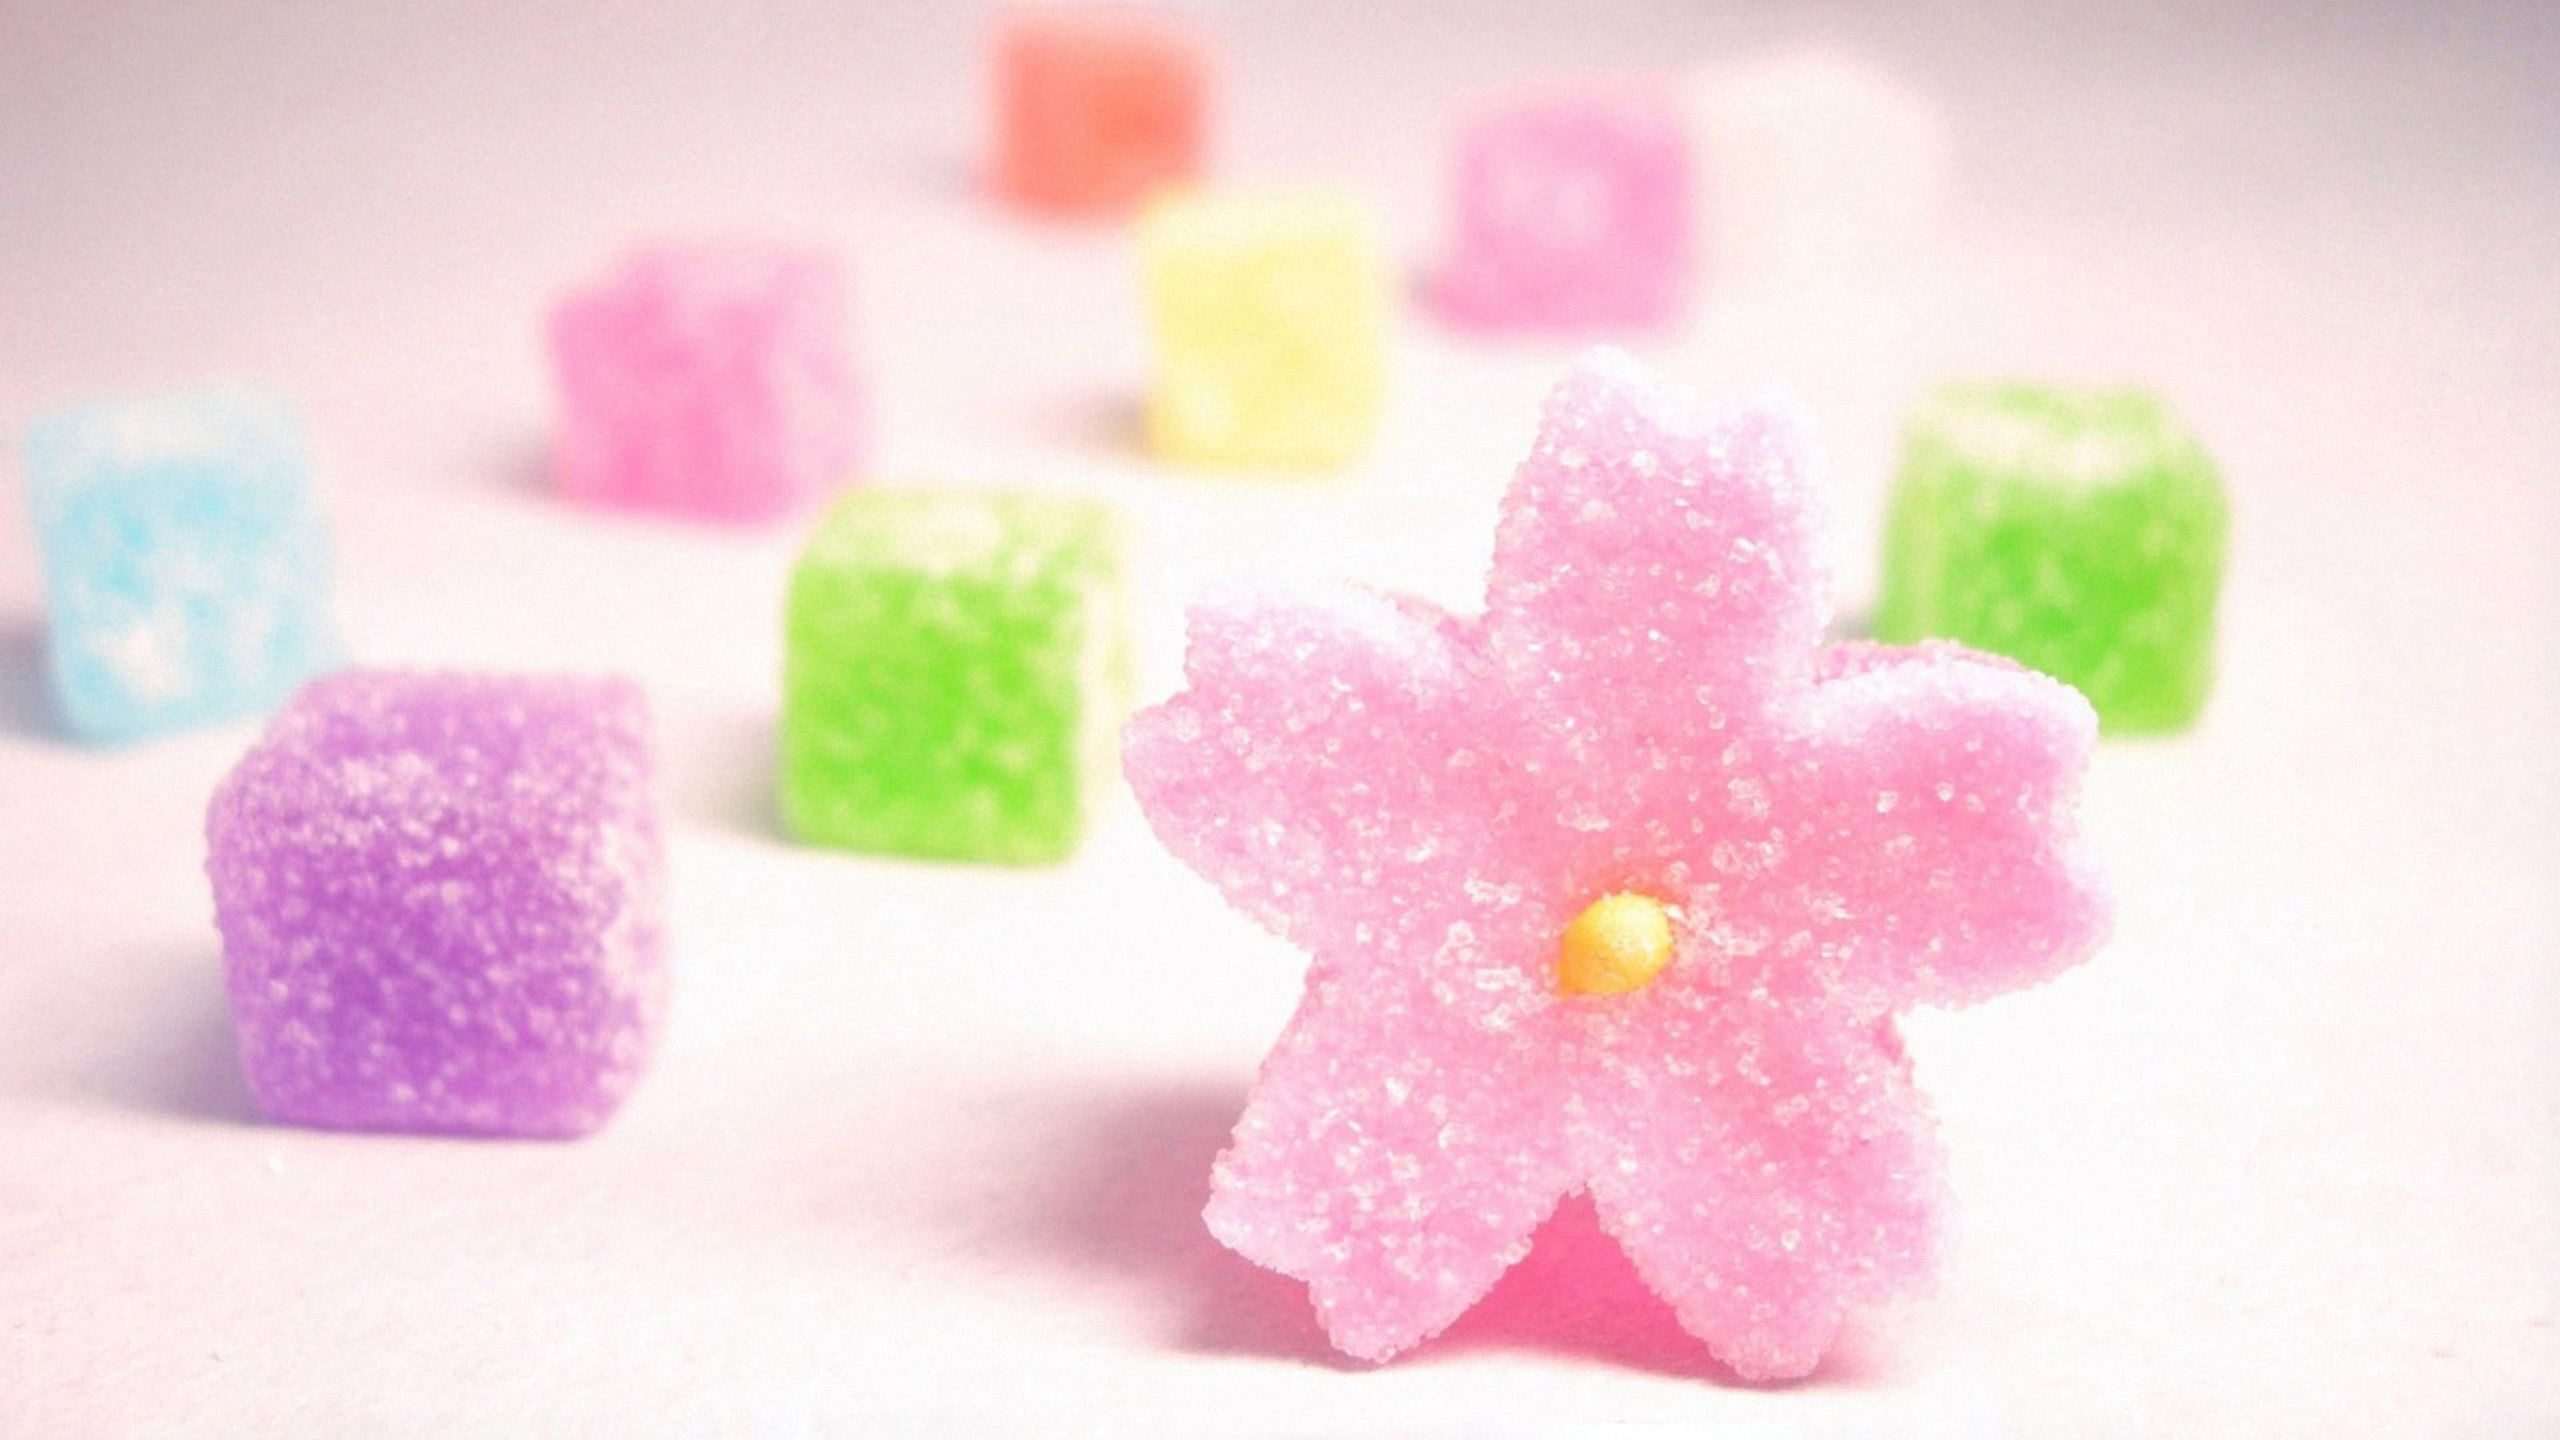 star candy wallpaper background 59016